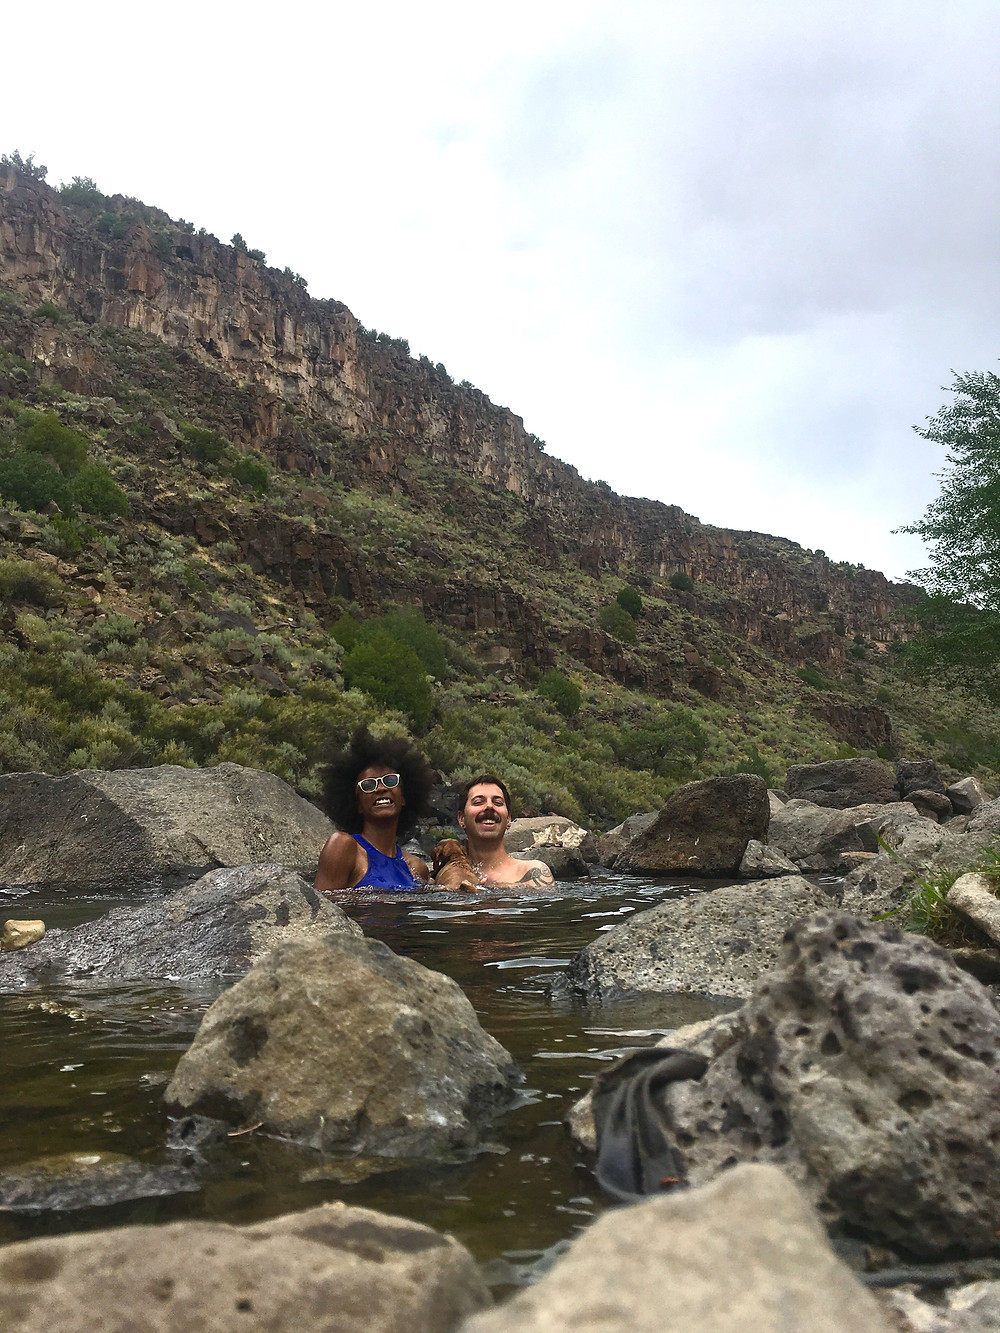 found our favorite natural hot springs in Taos